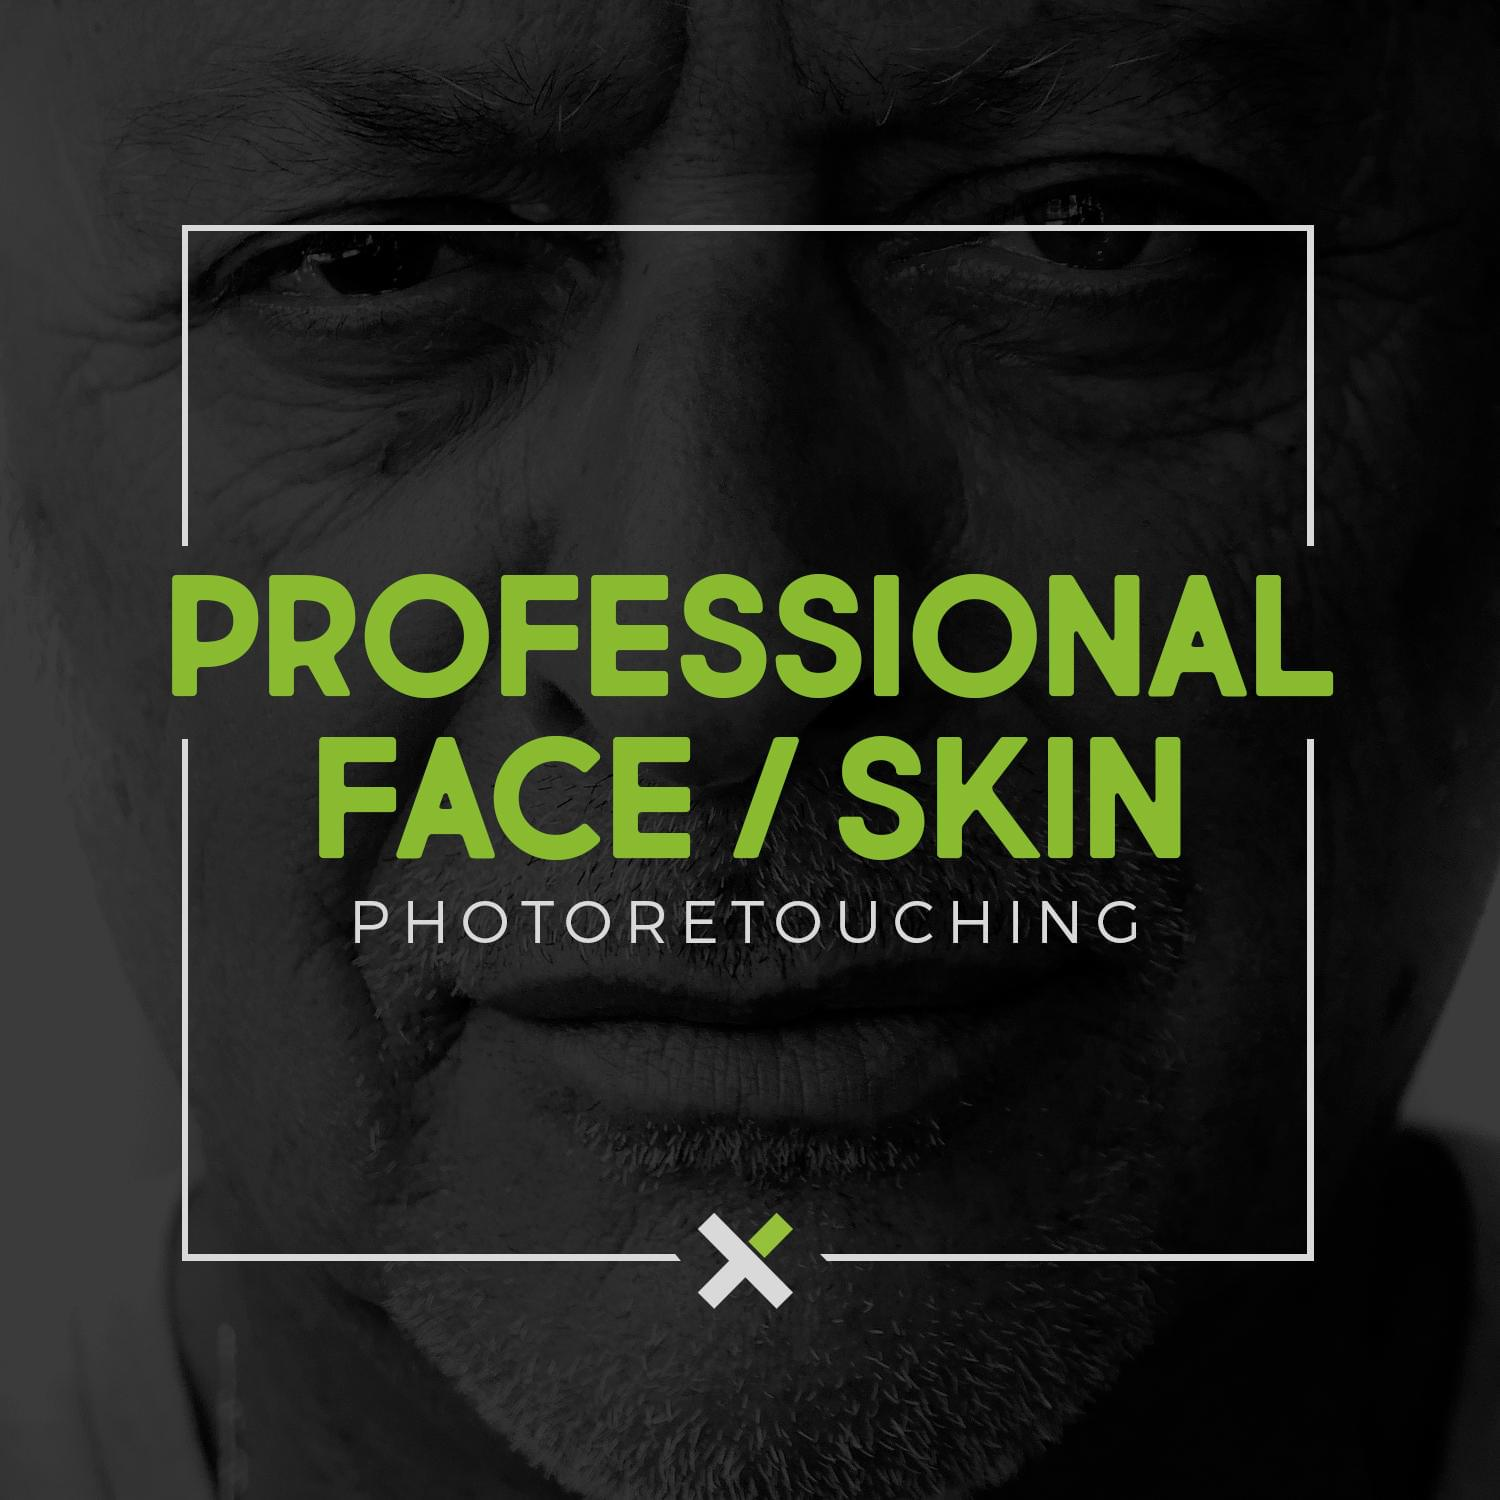 Professional Face - Skin Photo Retouching by touringxx - 114789